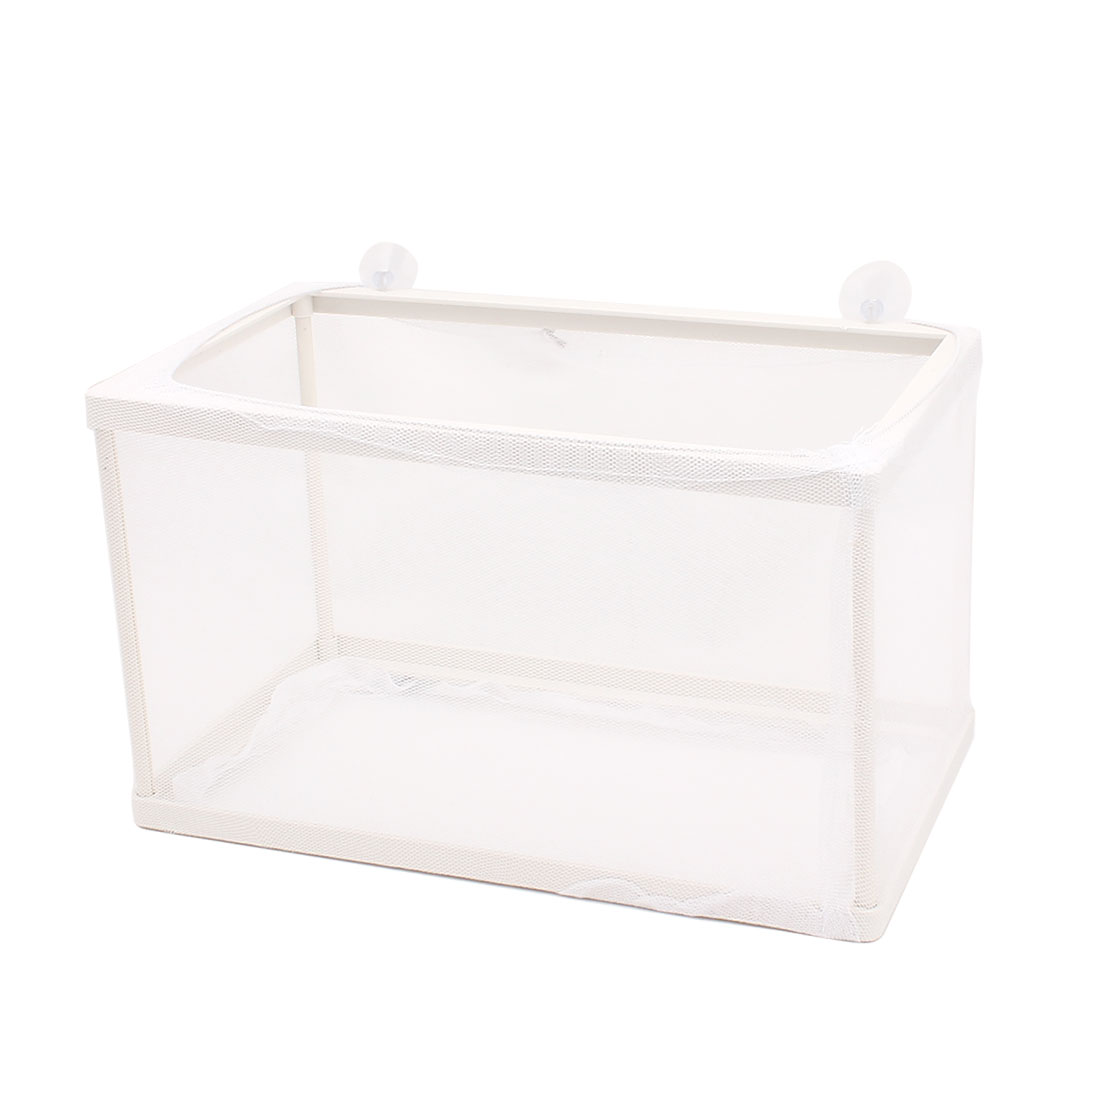 Aquarium Fish Tank Plastic Floating Isolation Divider Breeding Box Net